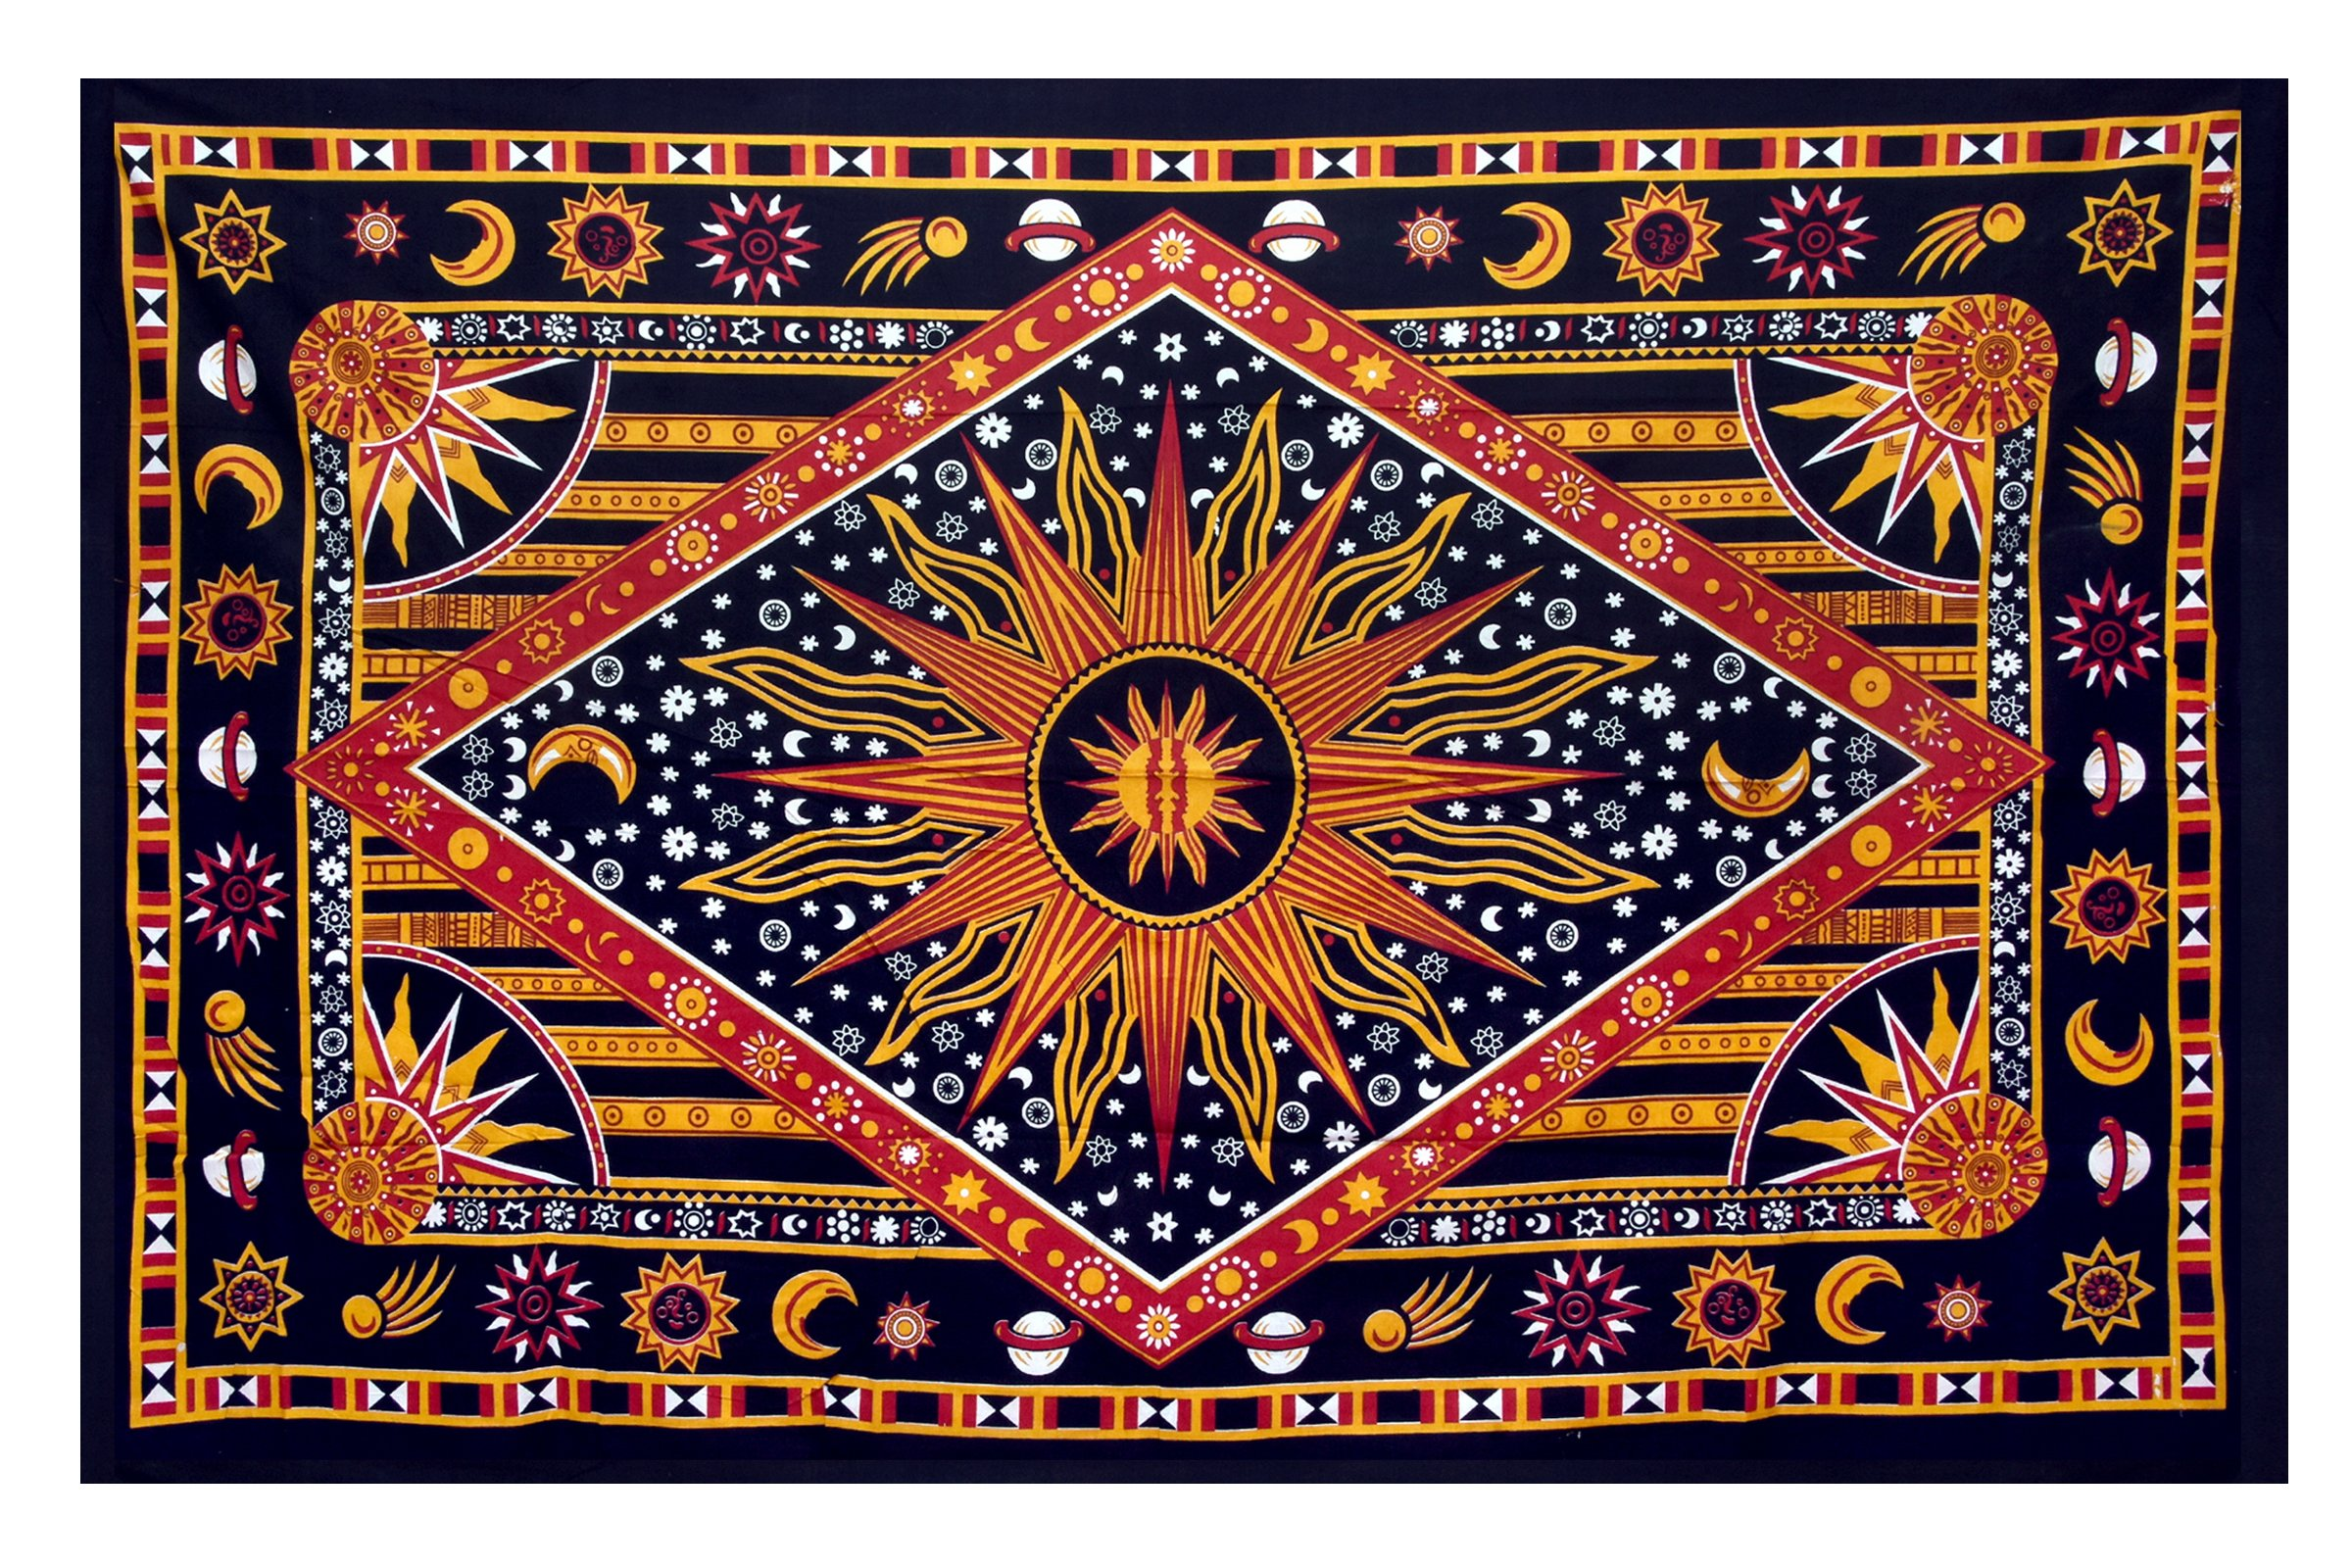 celestial sun moon stars planet tapestry indian wall decor wall hangingroom tapestry bohemian tapestry tapestry tapestry wall hanging boho tapestryhippie . celestial sun moon stars planet tapestry indian wall decor wall